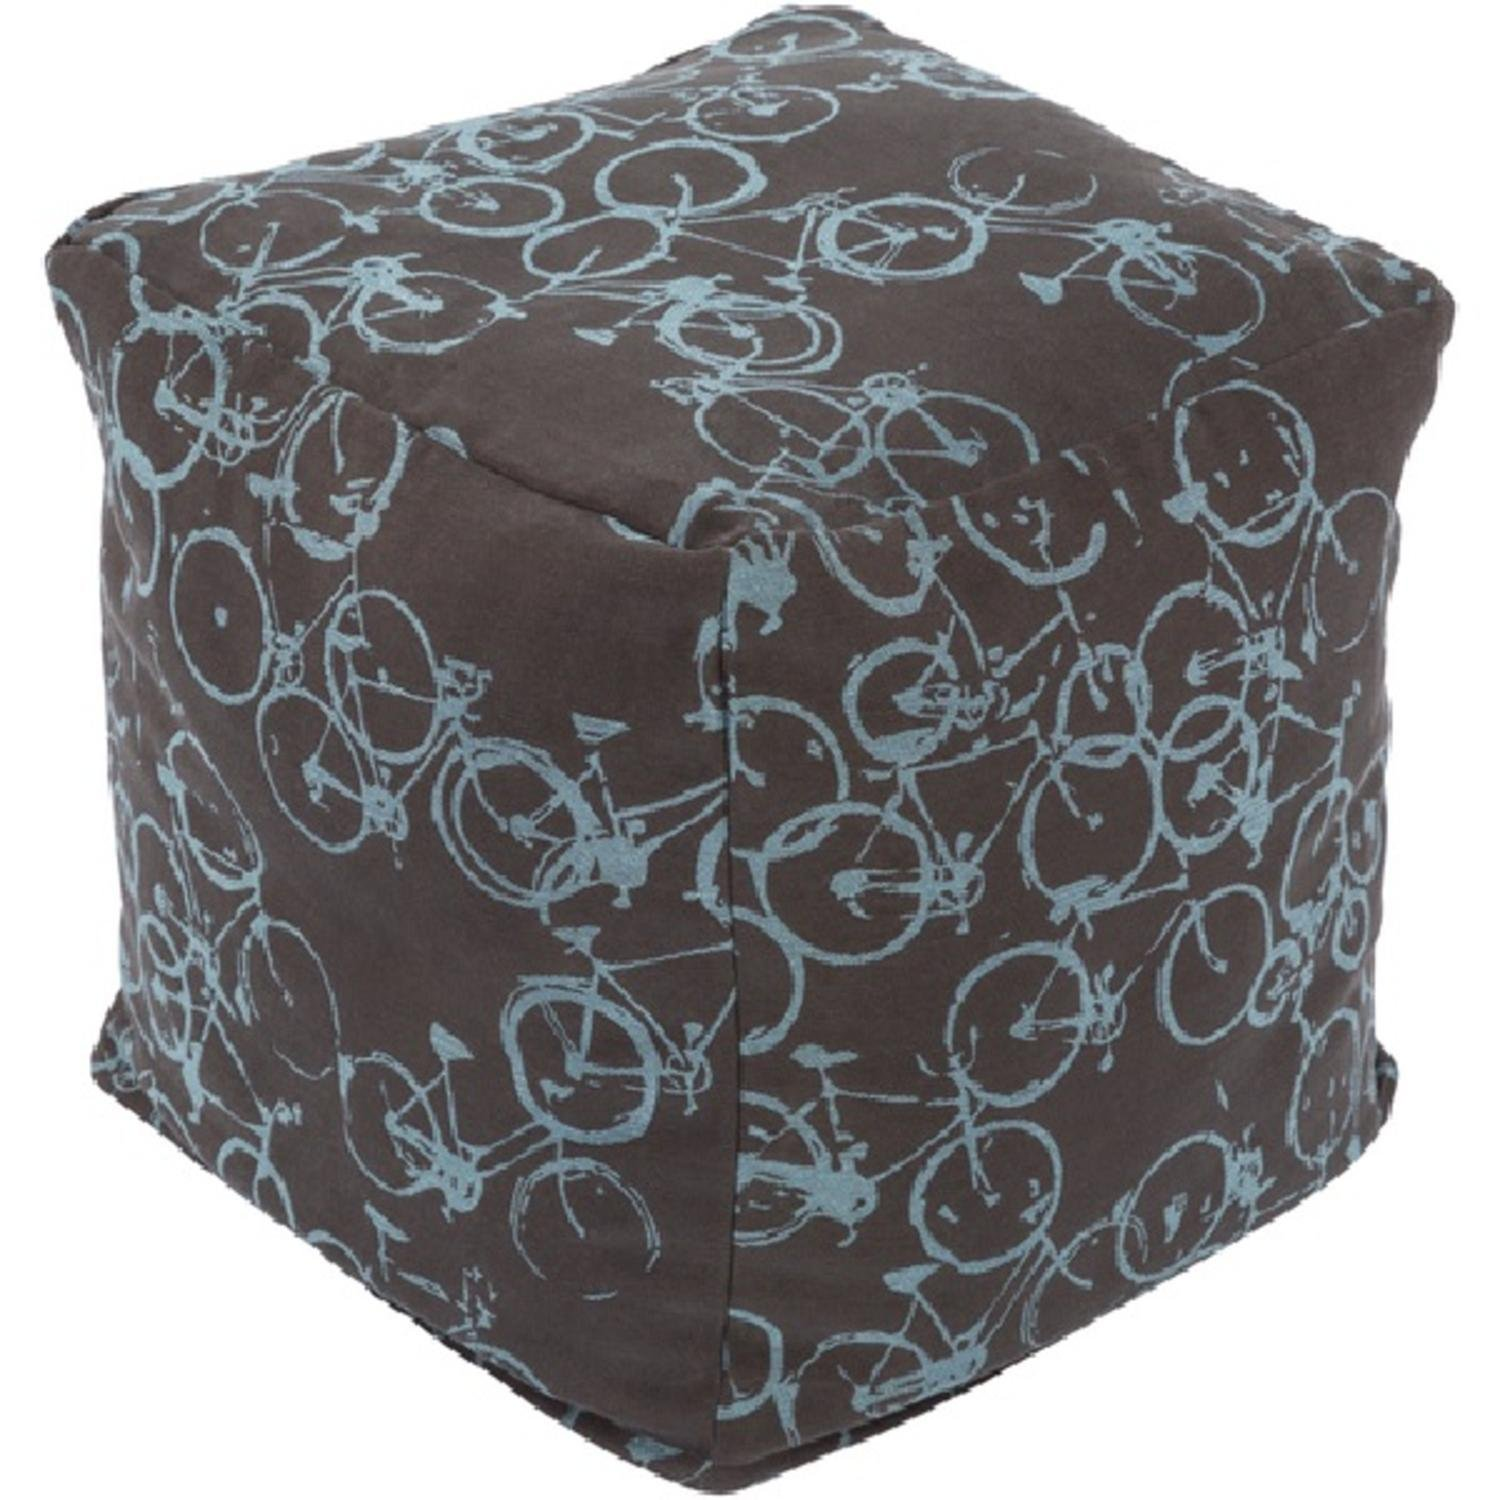 18'' Peddle Power Black and Sky Blue Whimsical Square Pouf Ottoman